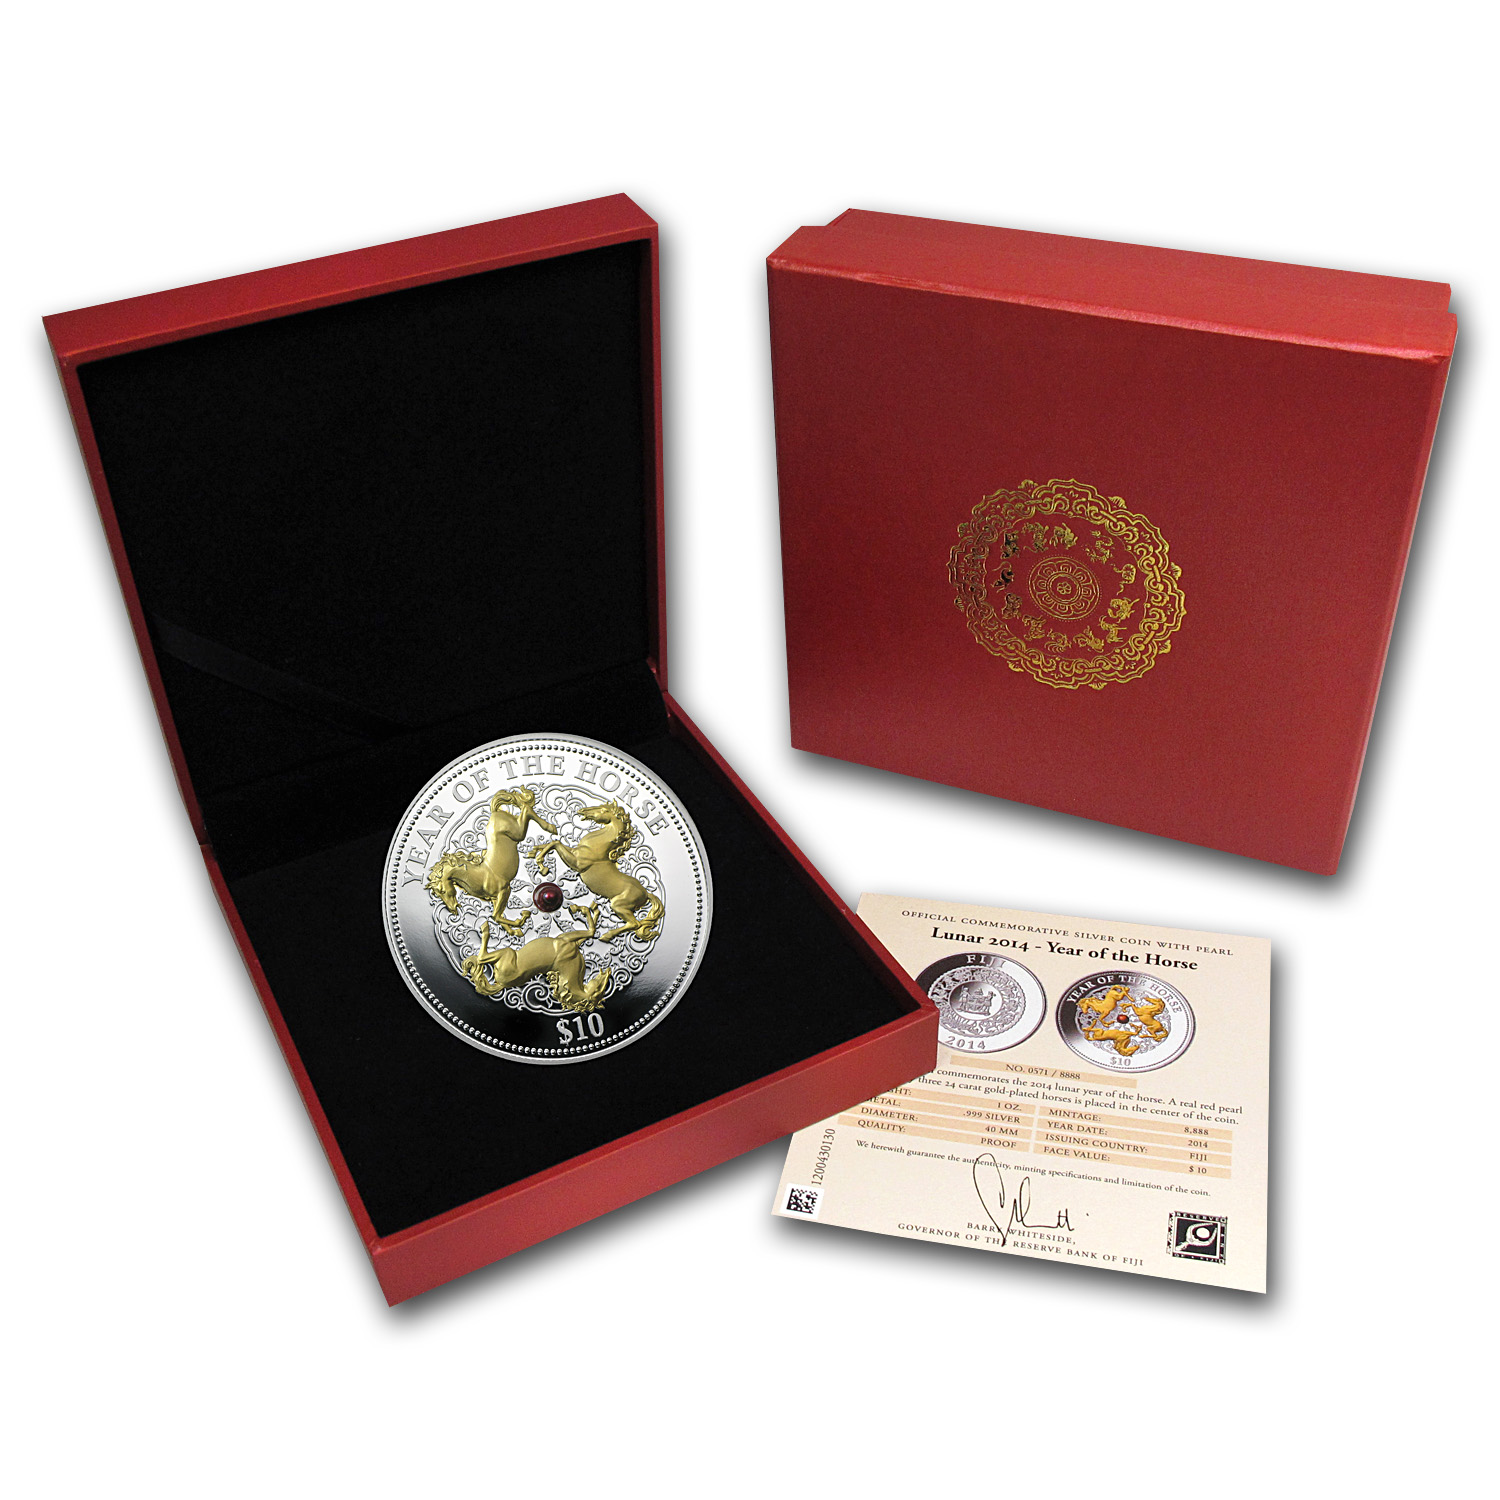 Fiji 2014 1 oz Silver Year of the Horse - Gold Gilded with Pearl